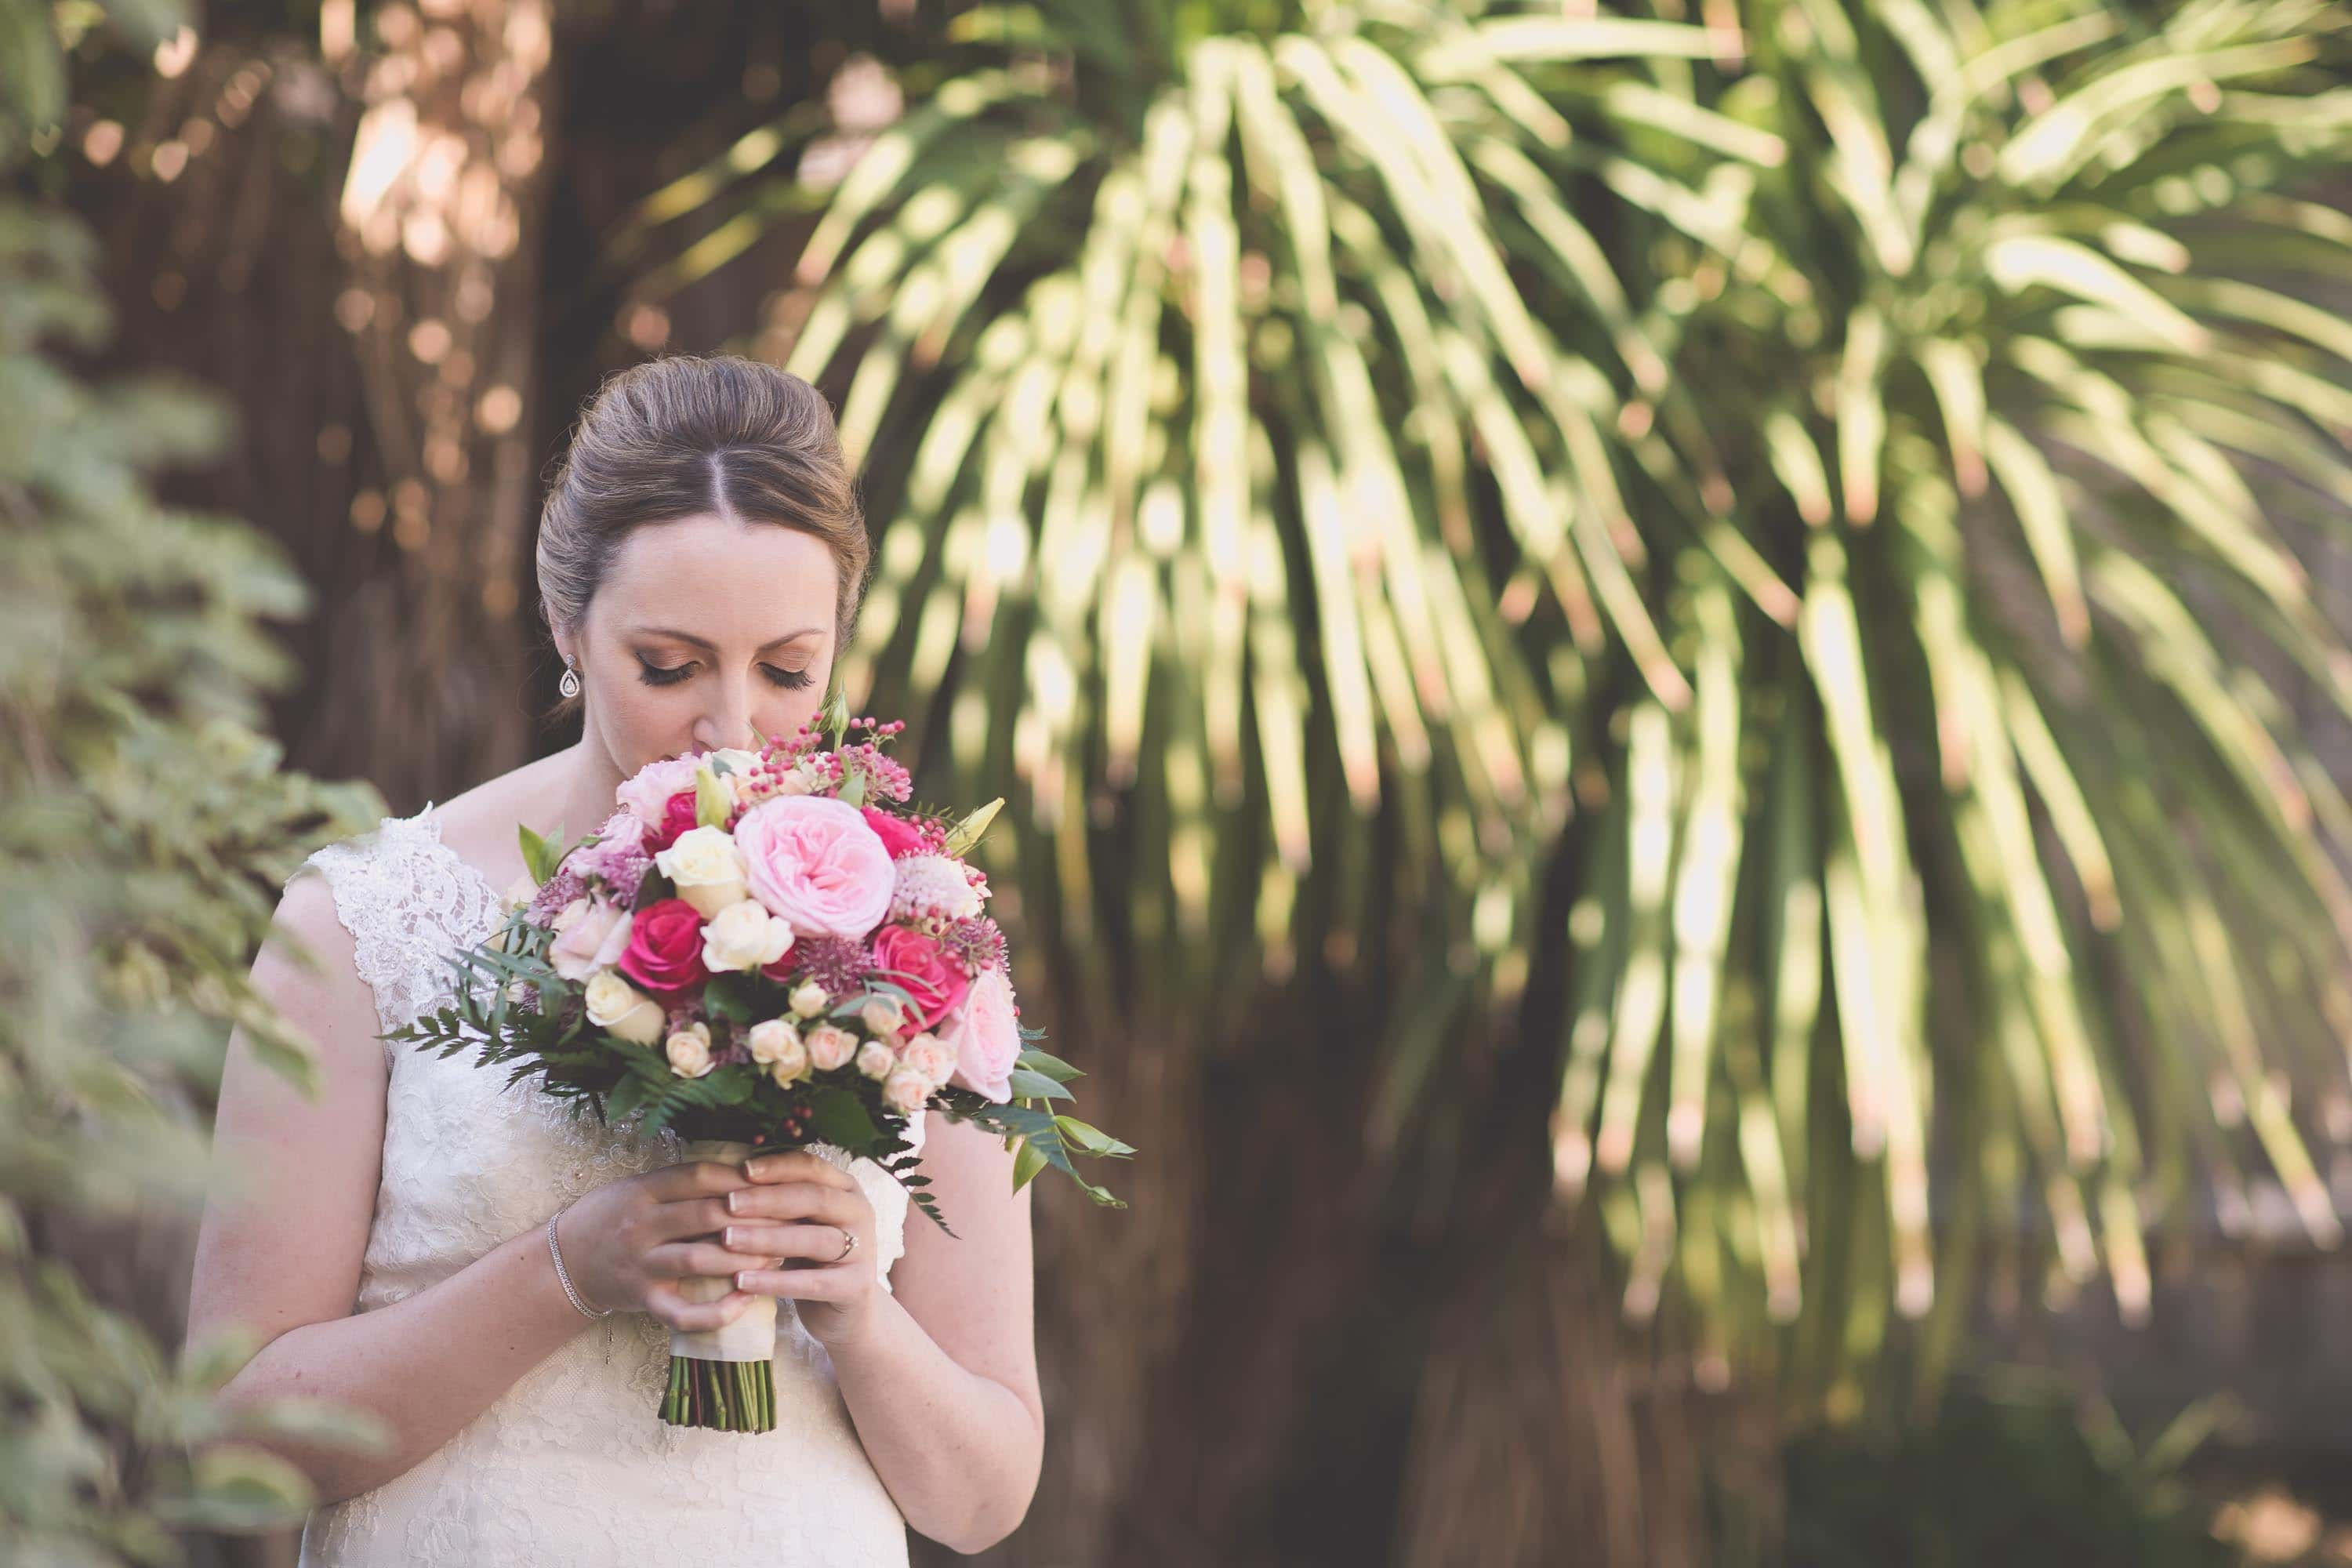 A bride smells her bouquet